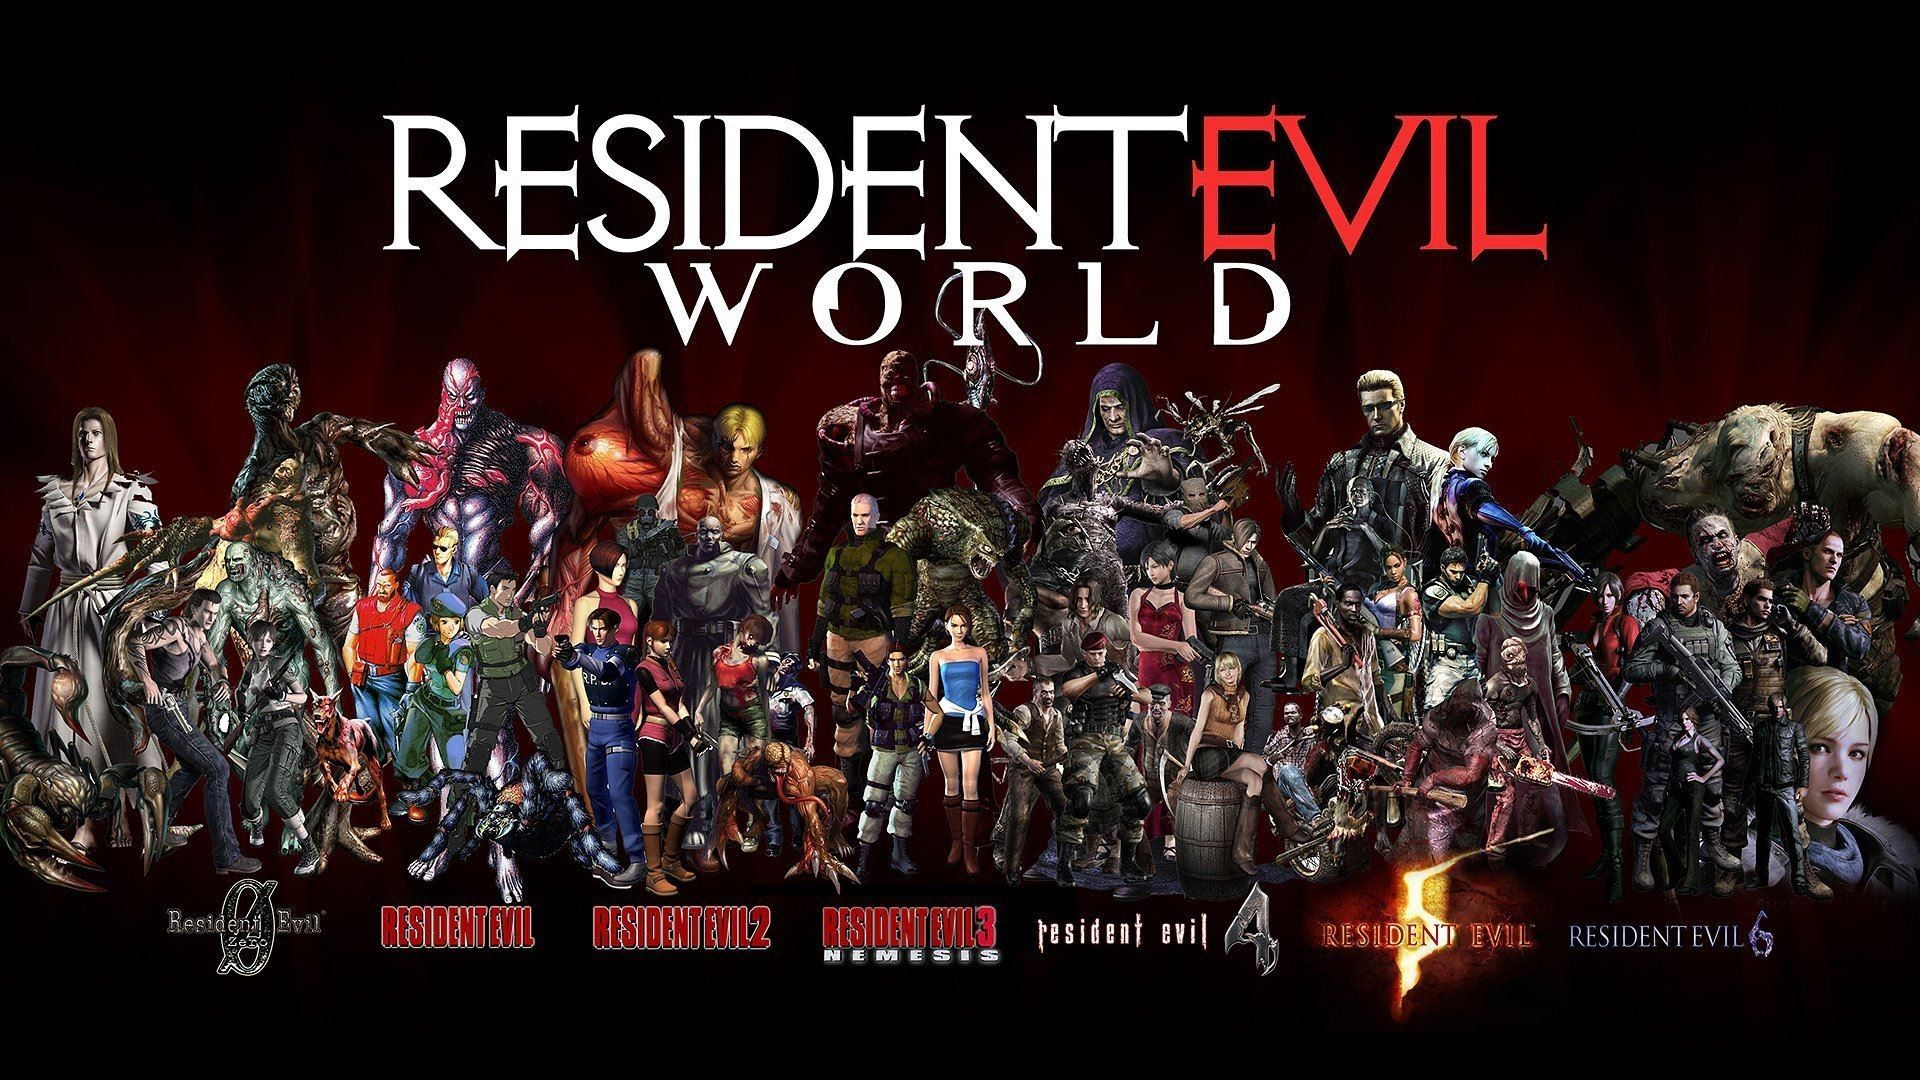 Resident Evil Wallpapers HD Wallpaper | Resident evil, Resident ...